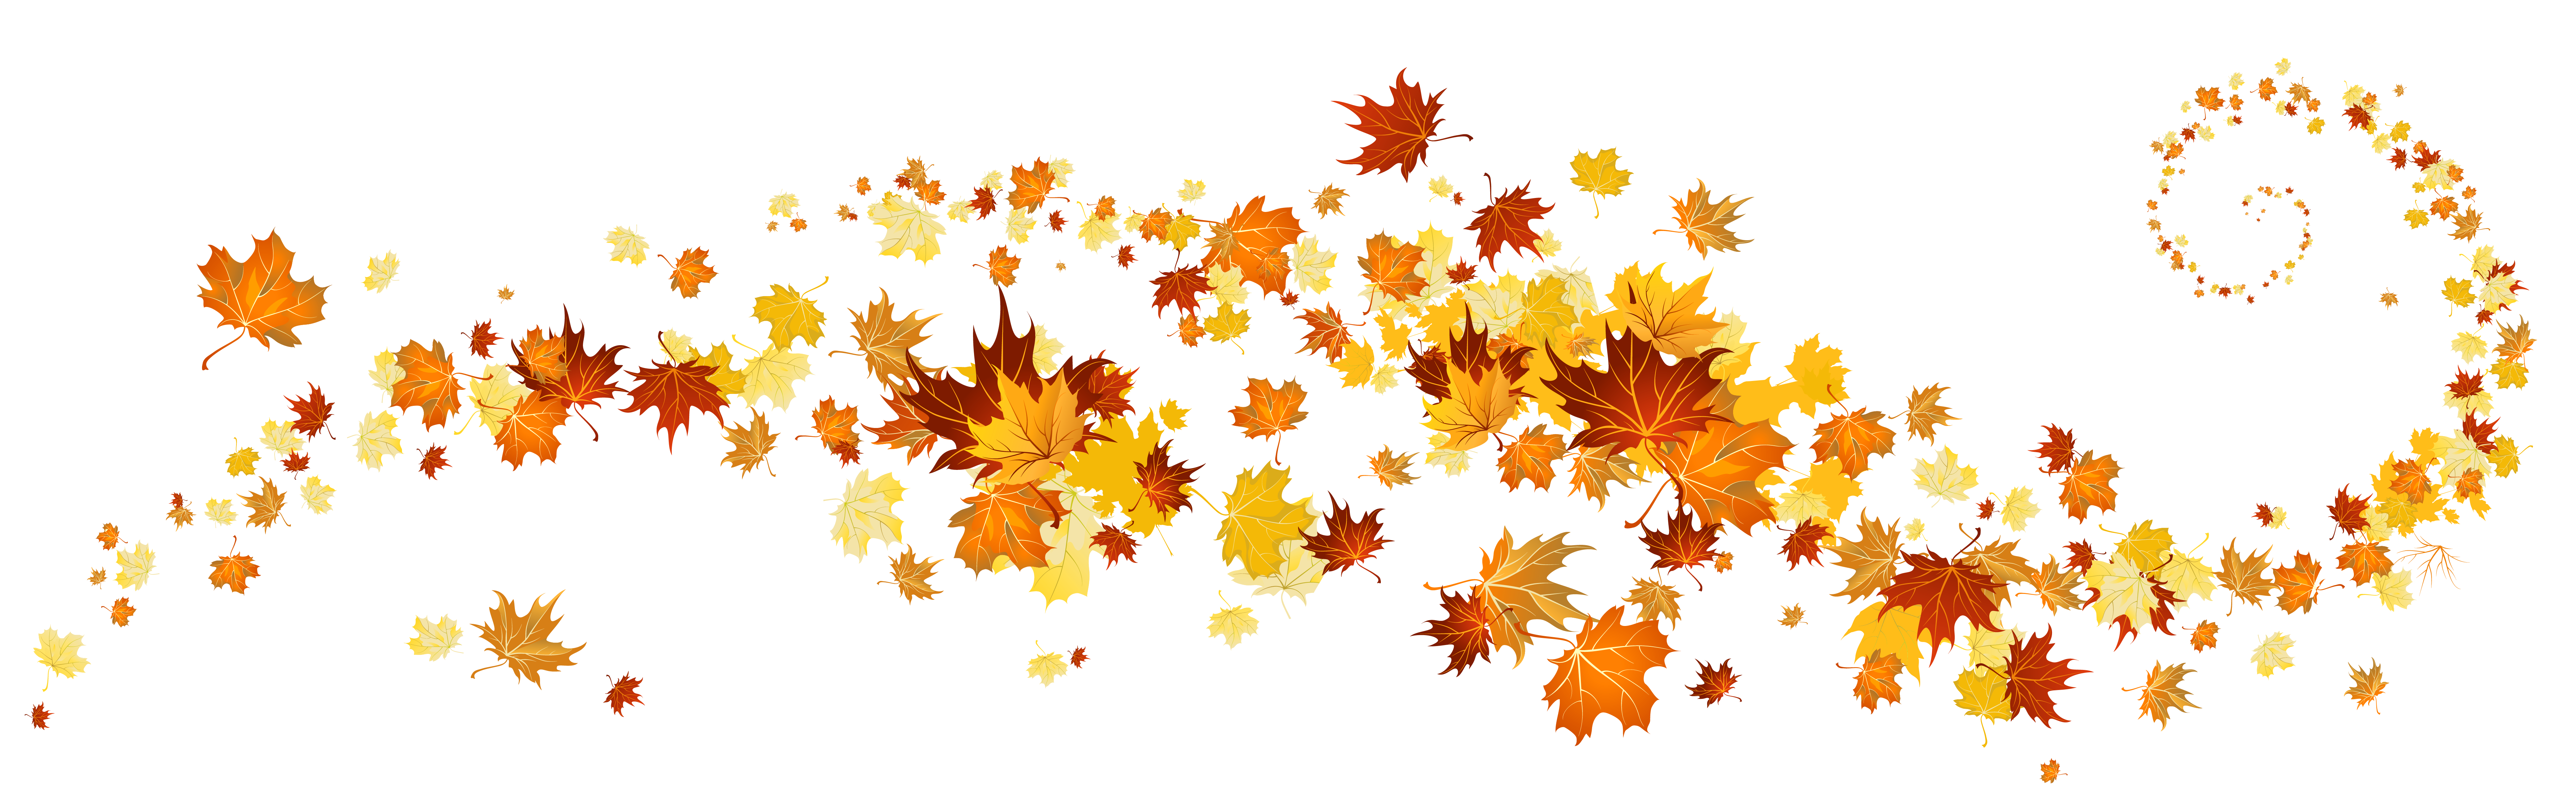 Clipart leaves thanksgiving, Clipart leaves thanksgiving.